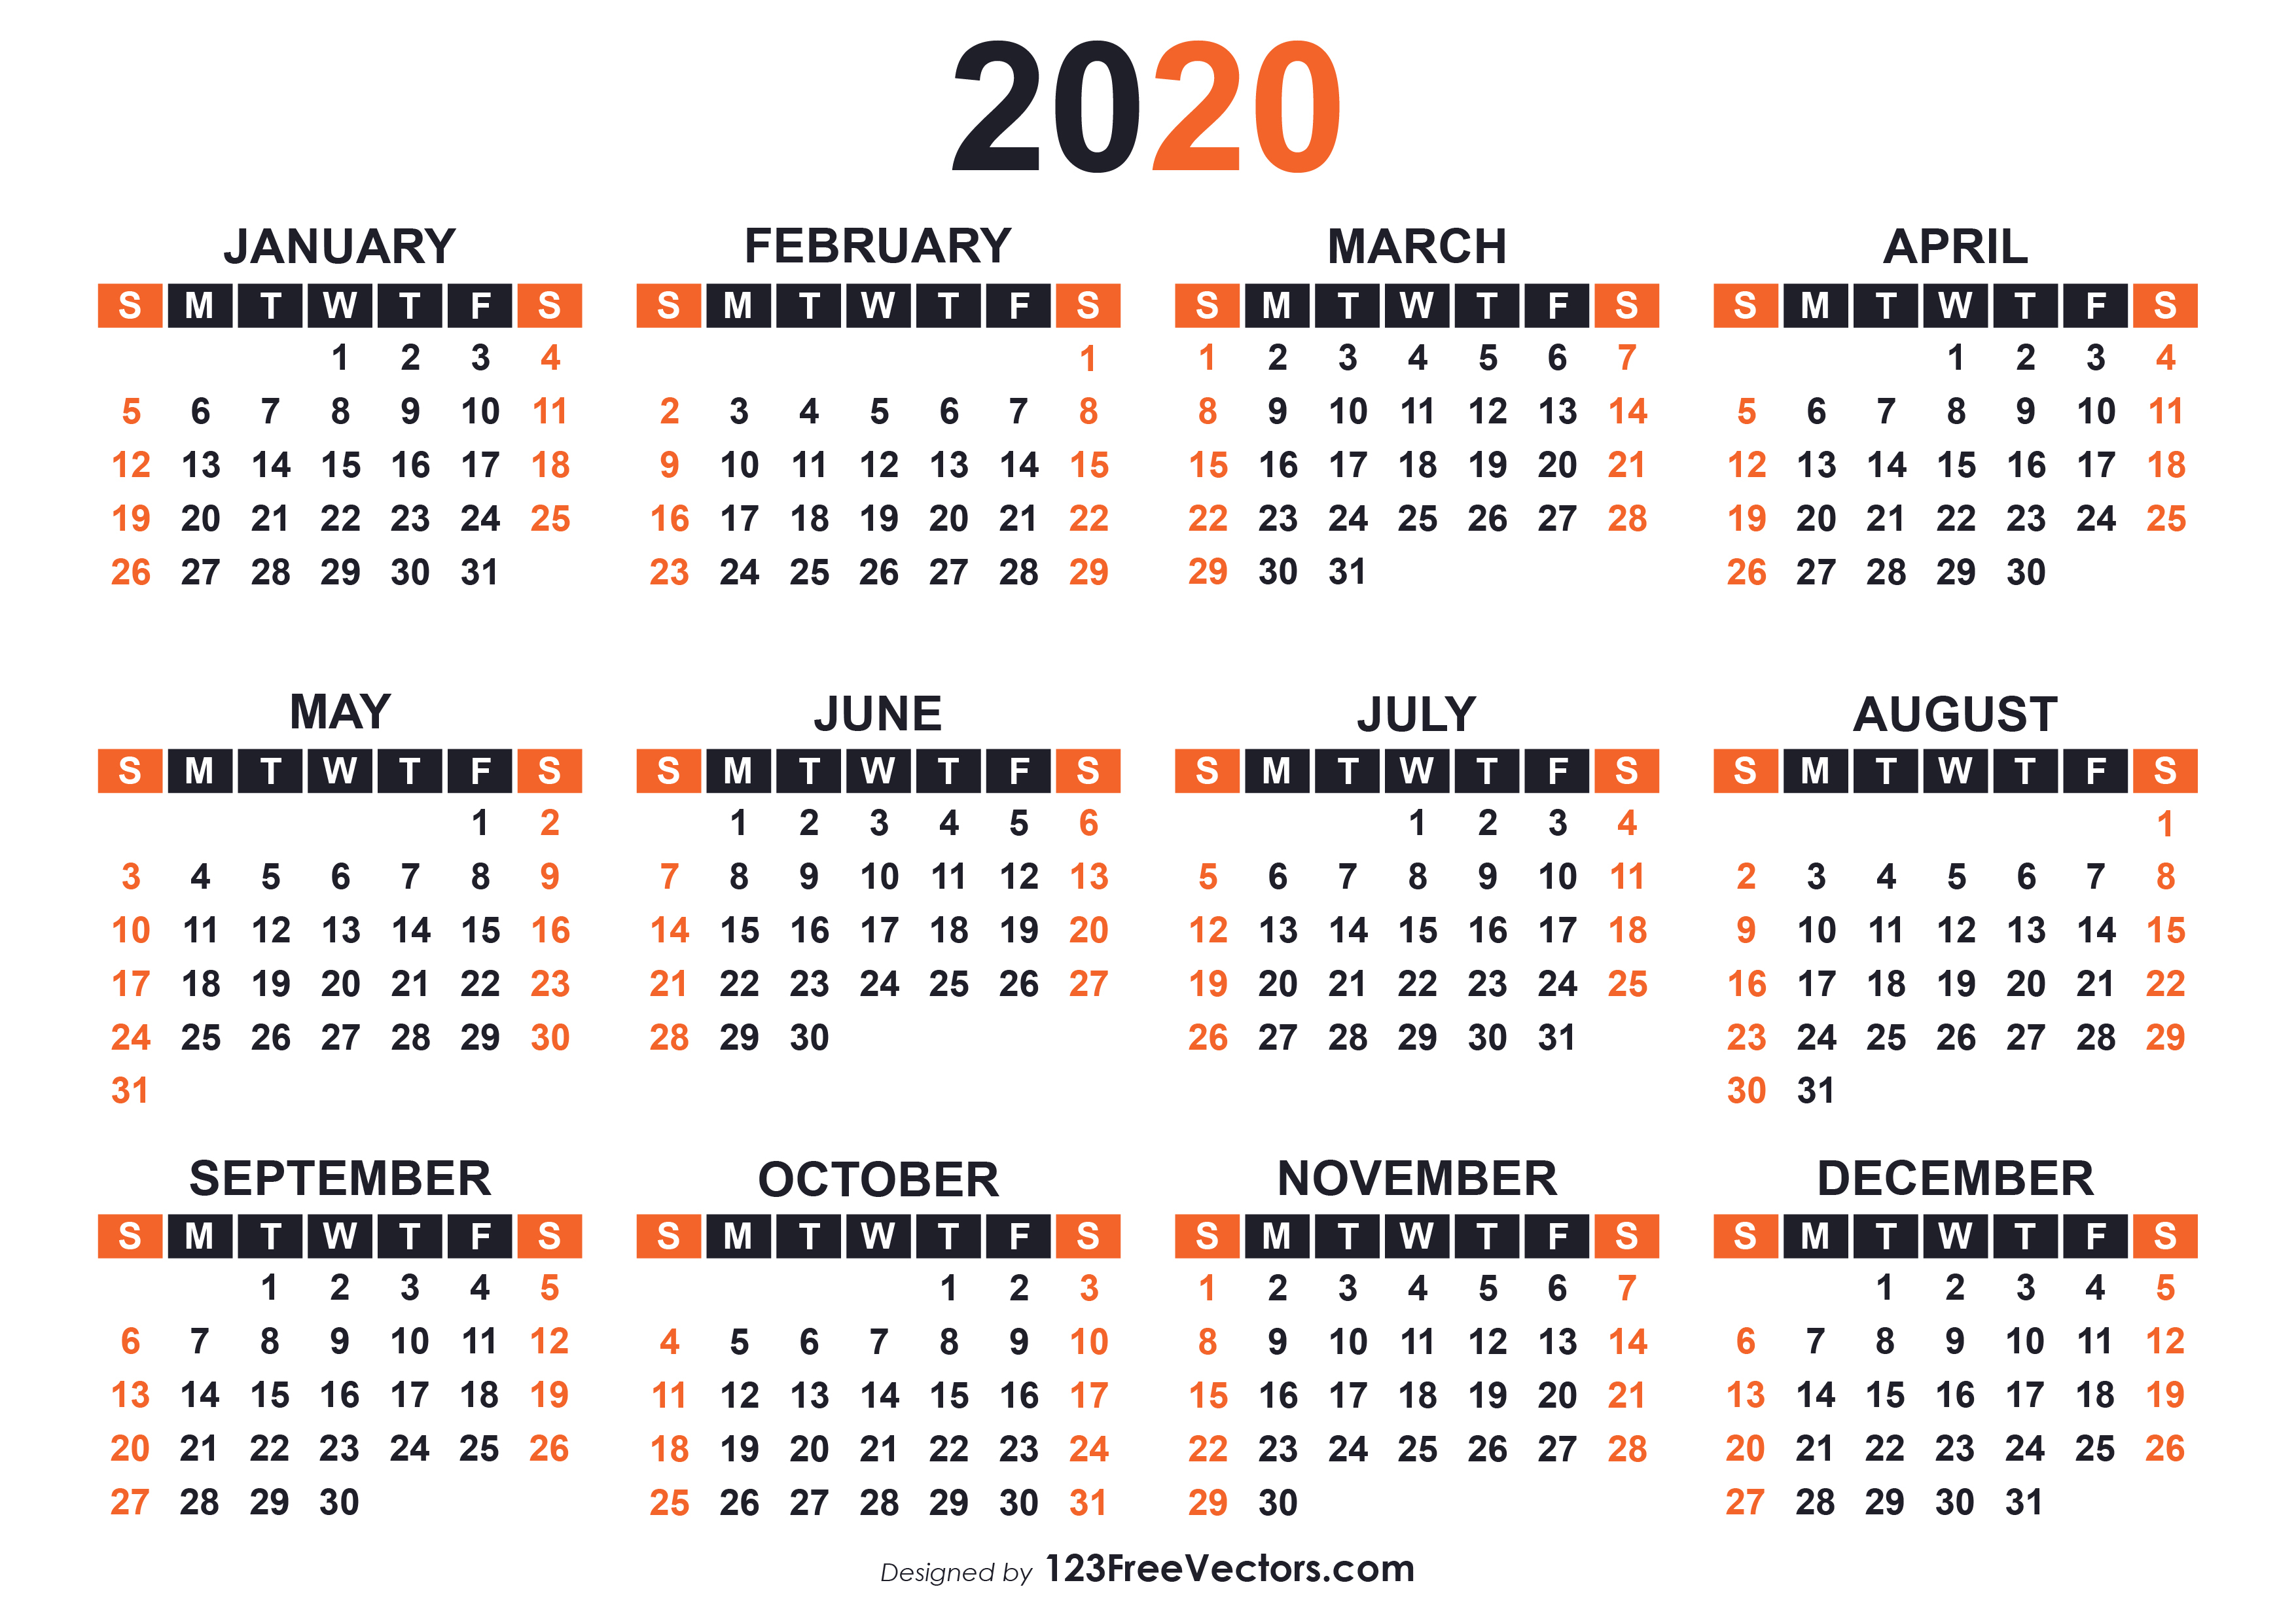 2020 Free Printable Calendar Templates throughout 2020 Calendar Free